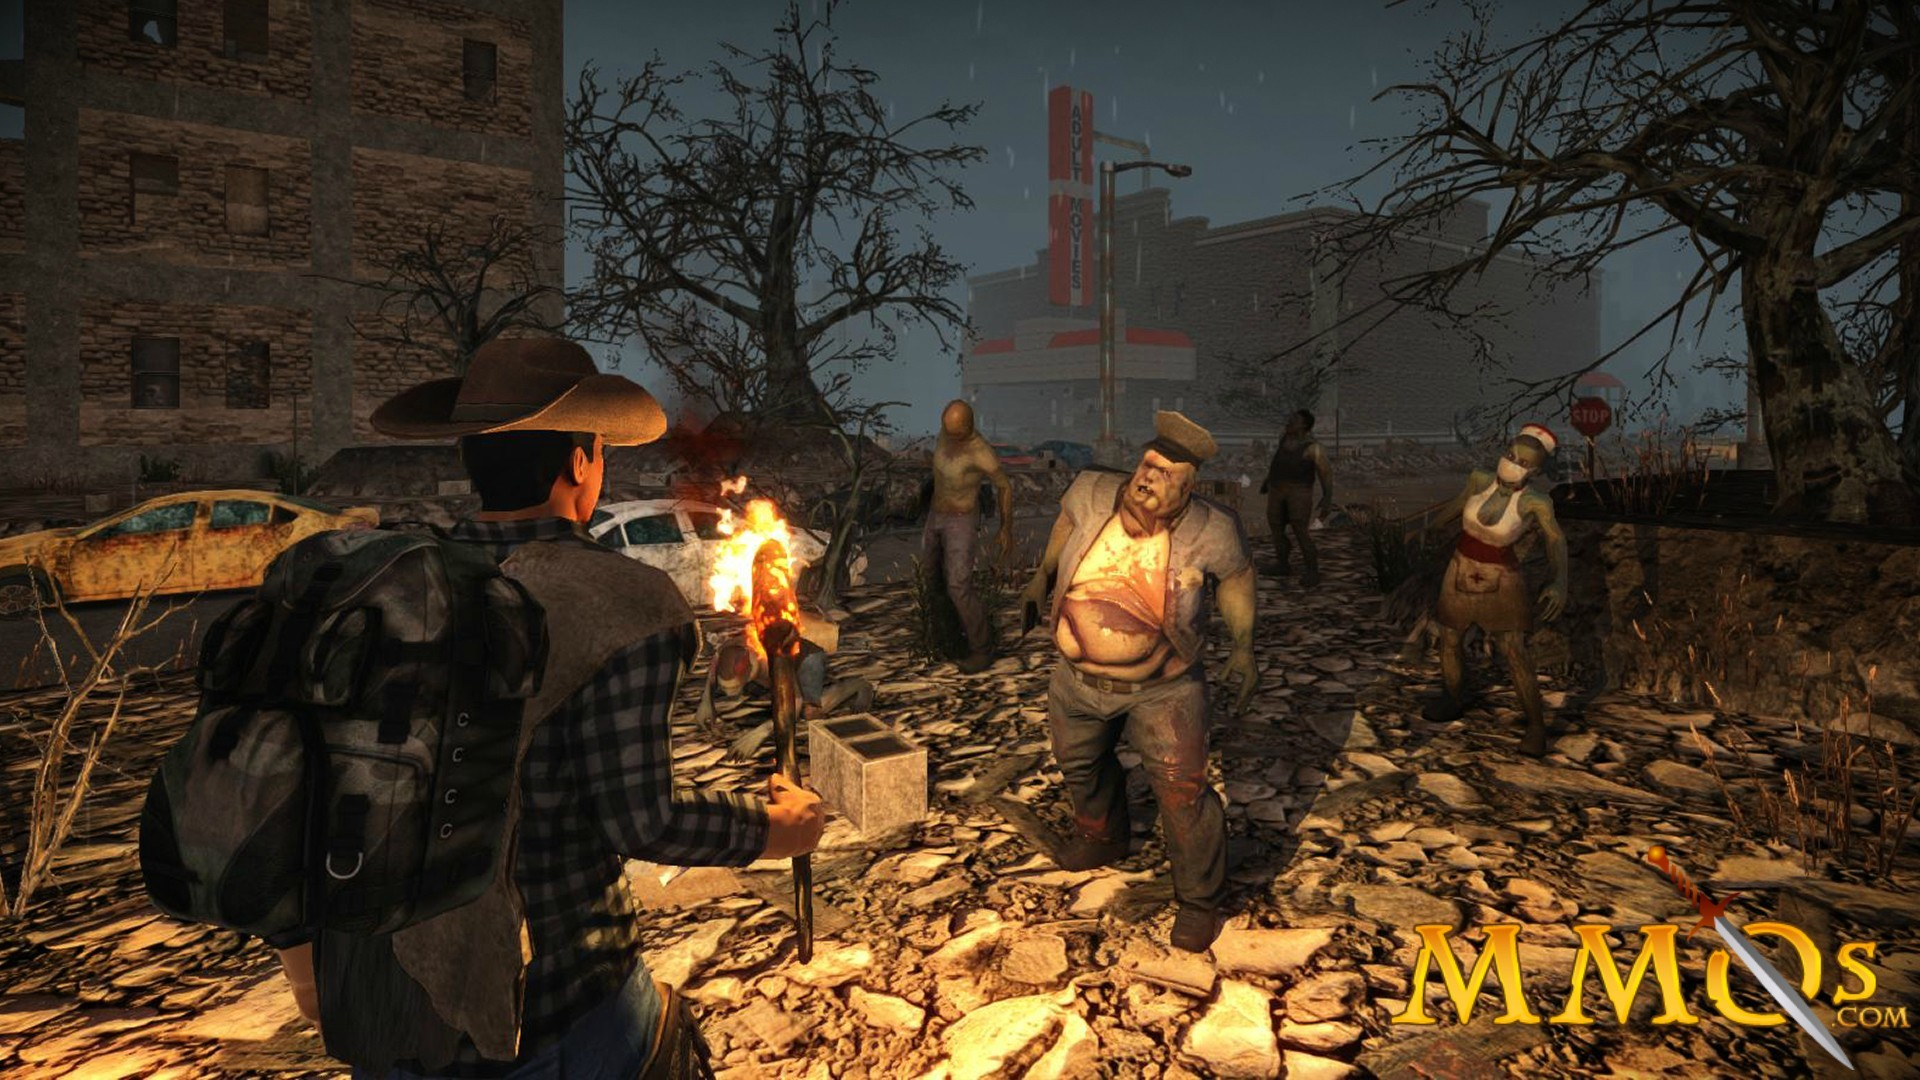 7 days to die city zombies